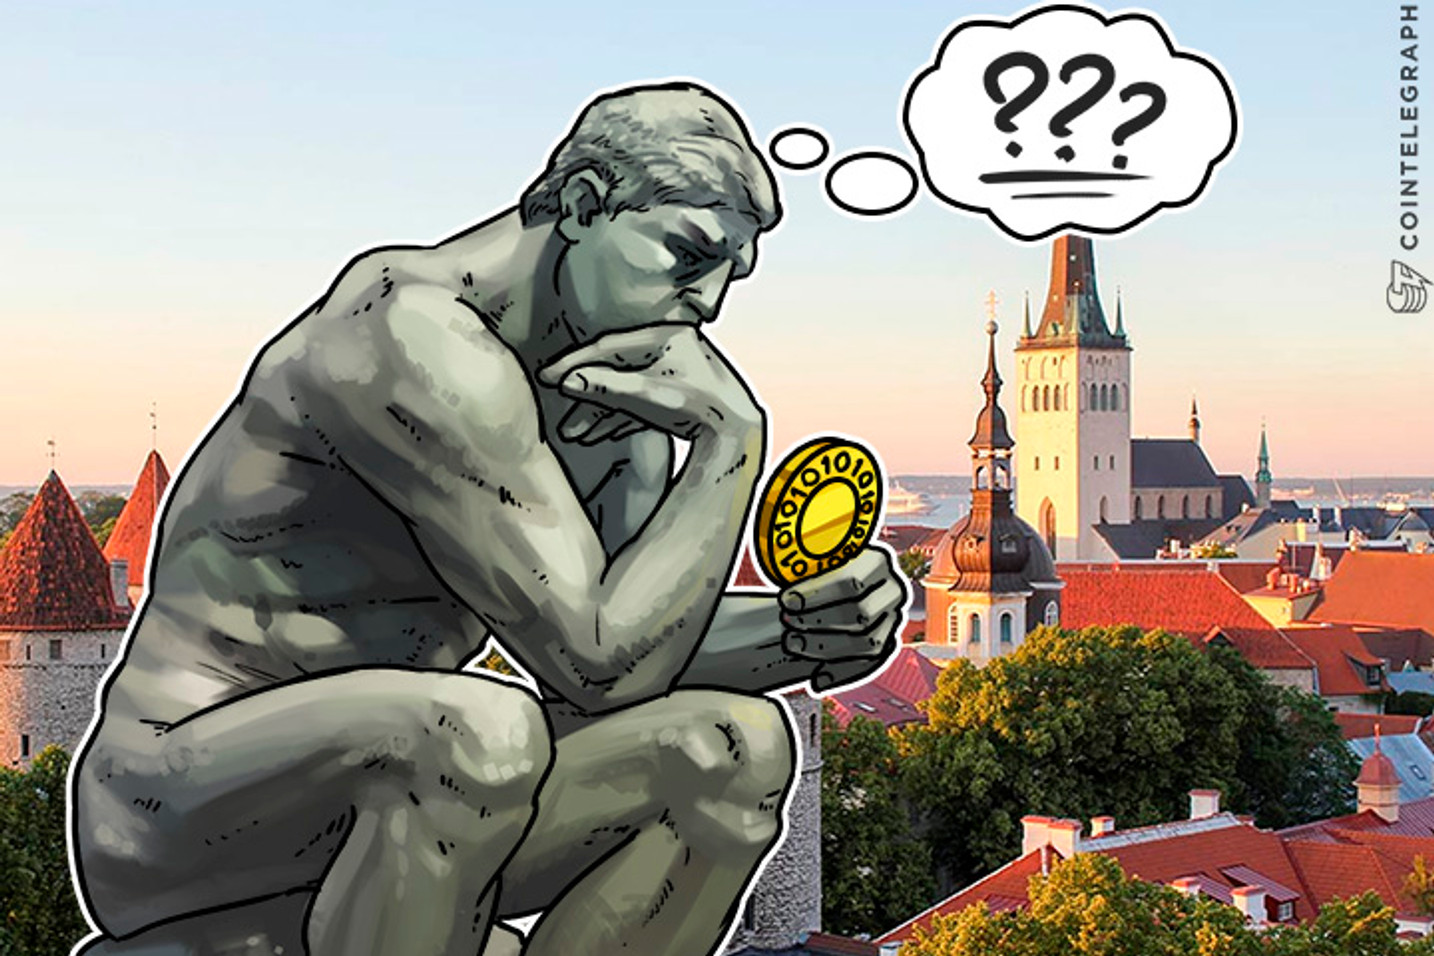 Estonia Can't Make Its Own Digital Currency